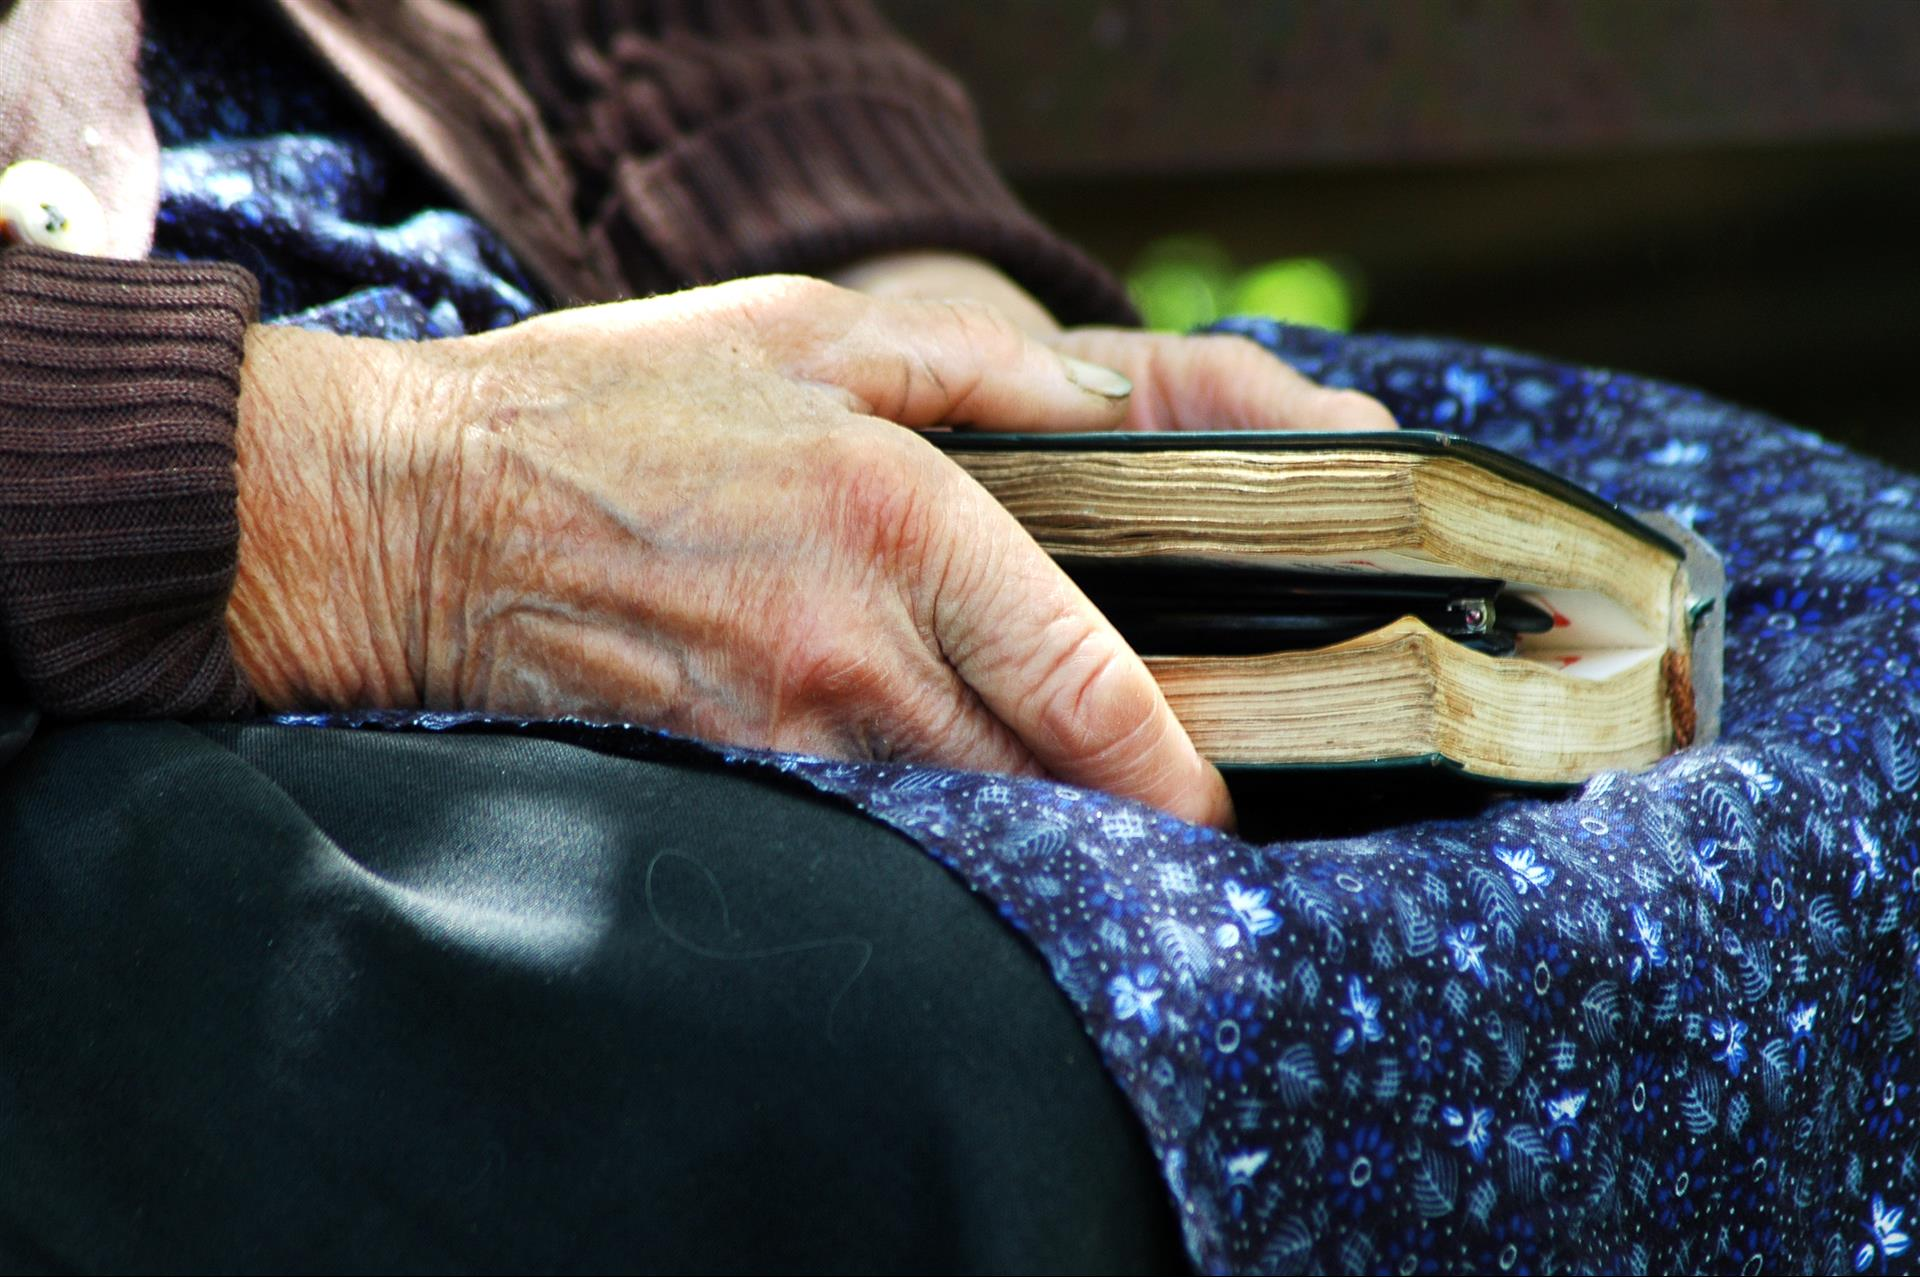 Elderly Figures in the Bible That Prove Age Doesn't Define Impact